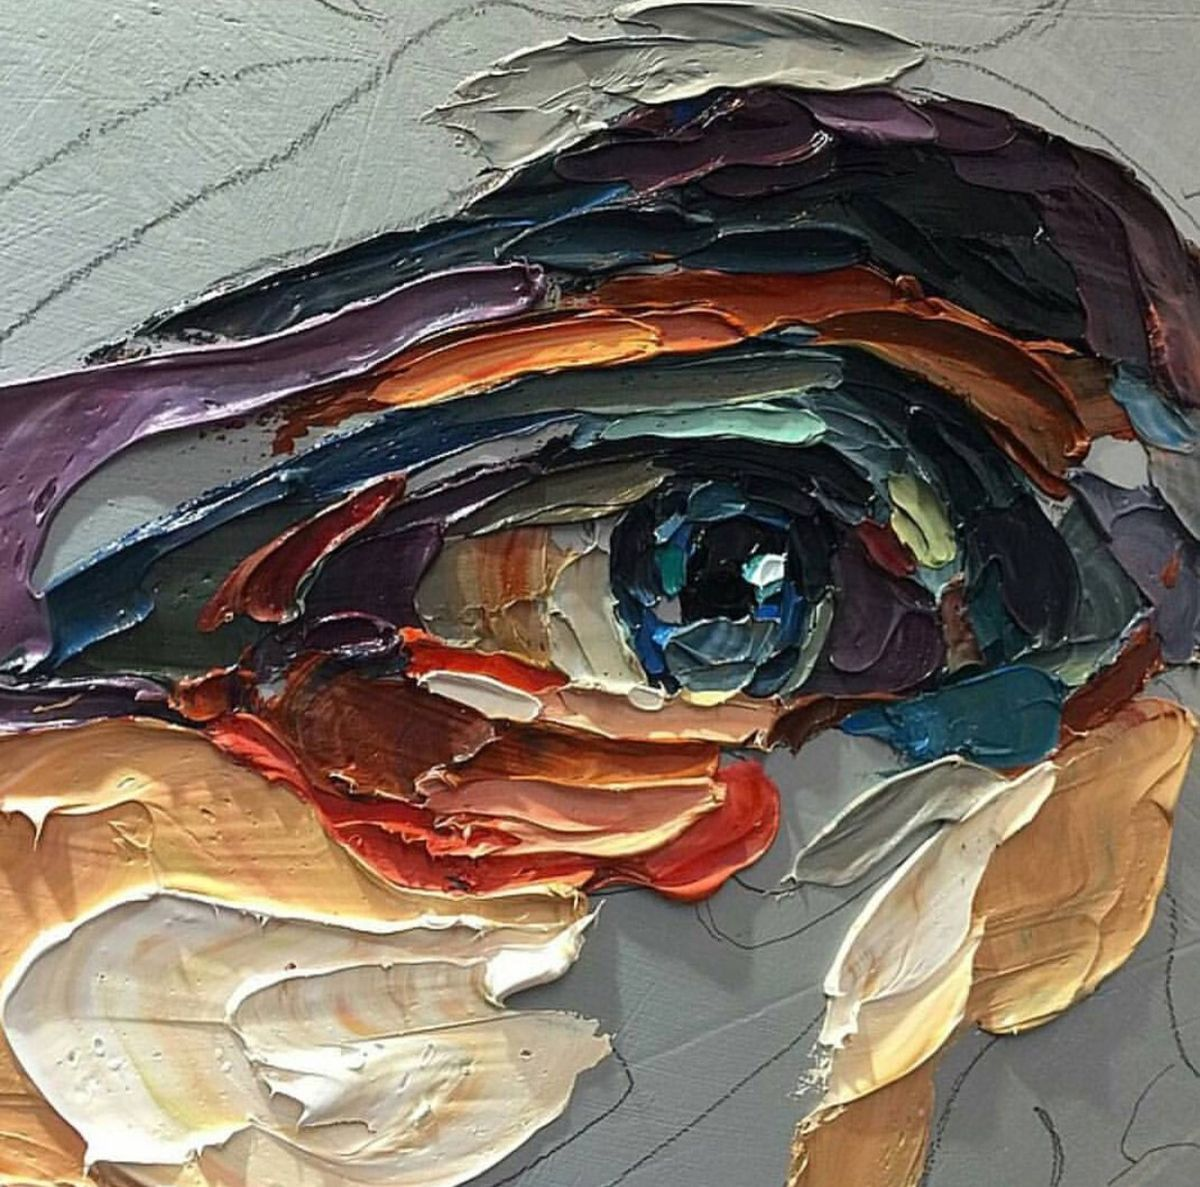 who joshua meils what acrylic eye painting why amzing use of